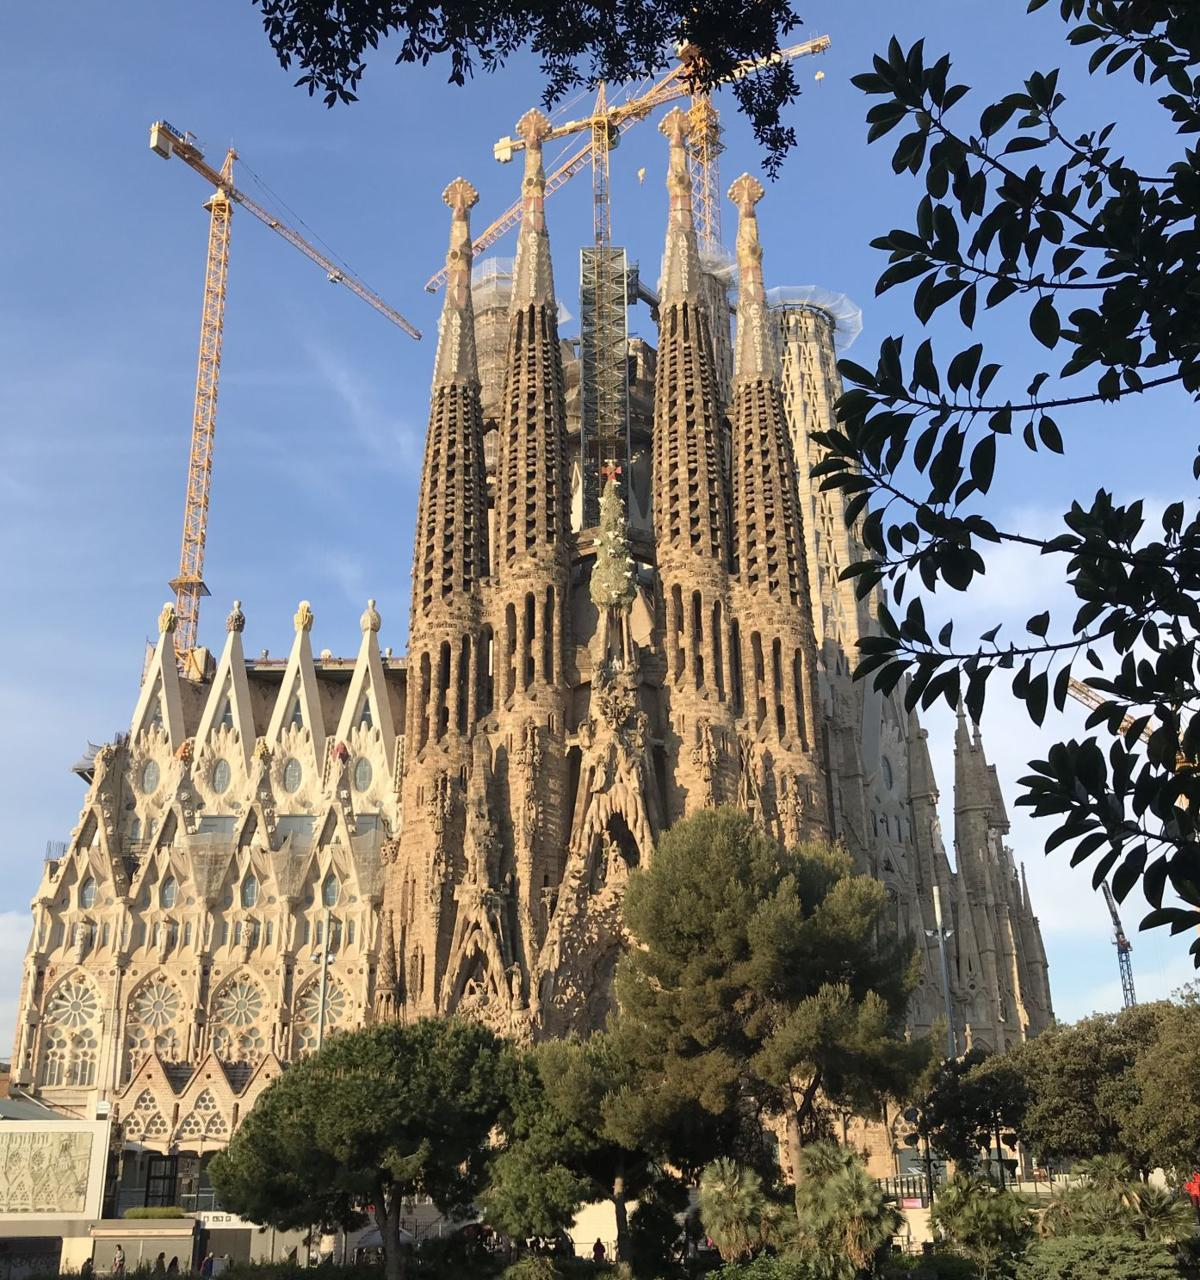 Sagrada masterpiece